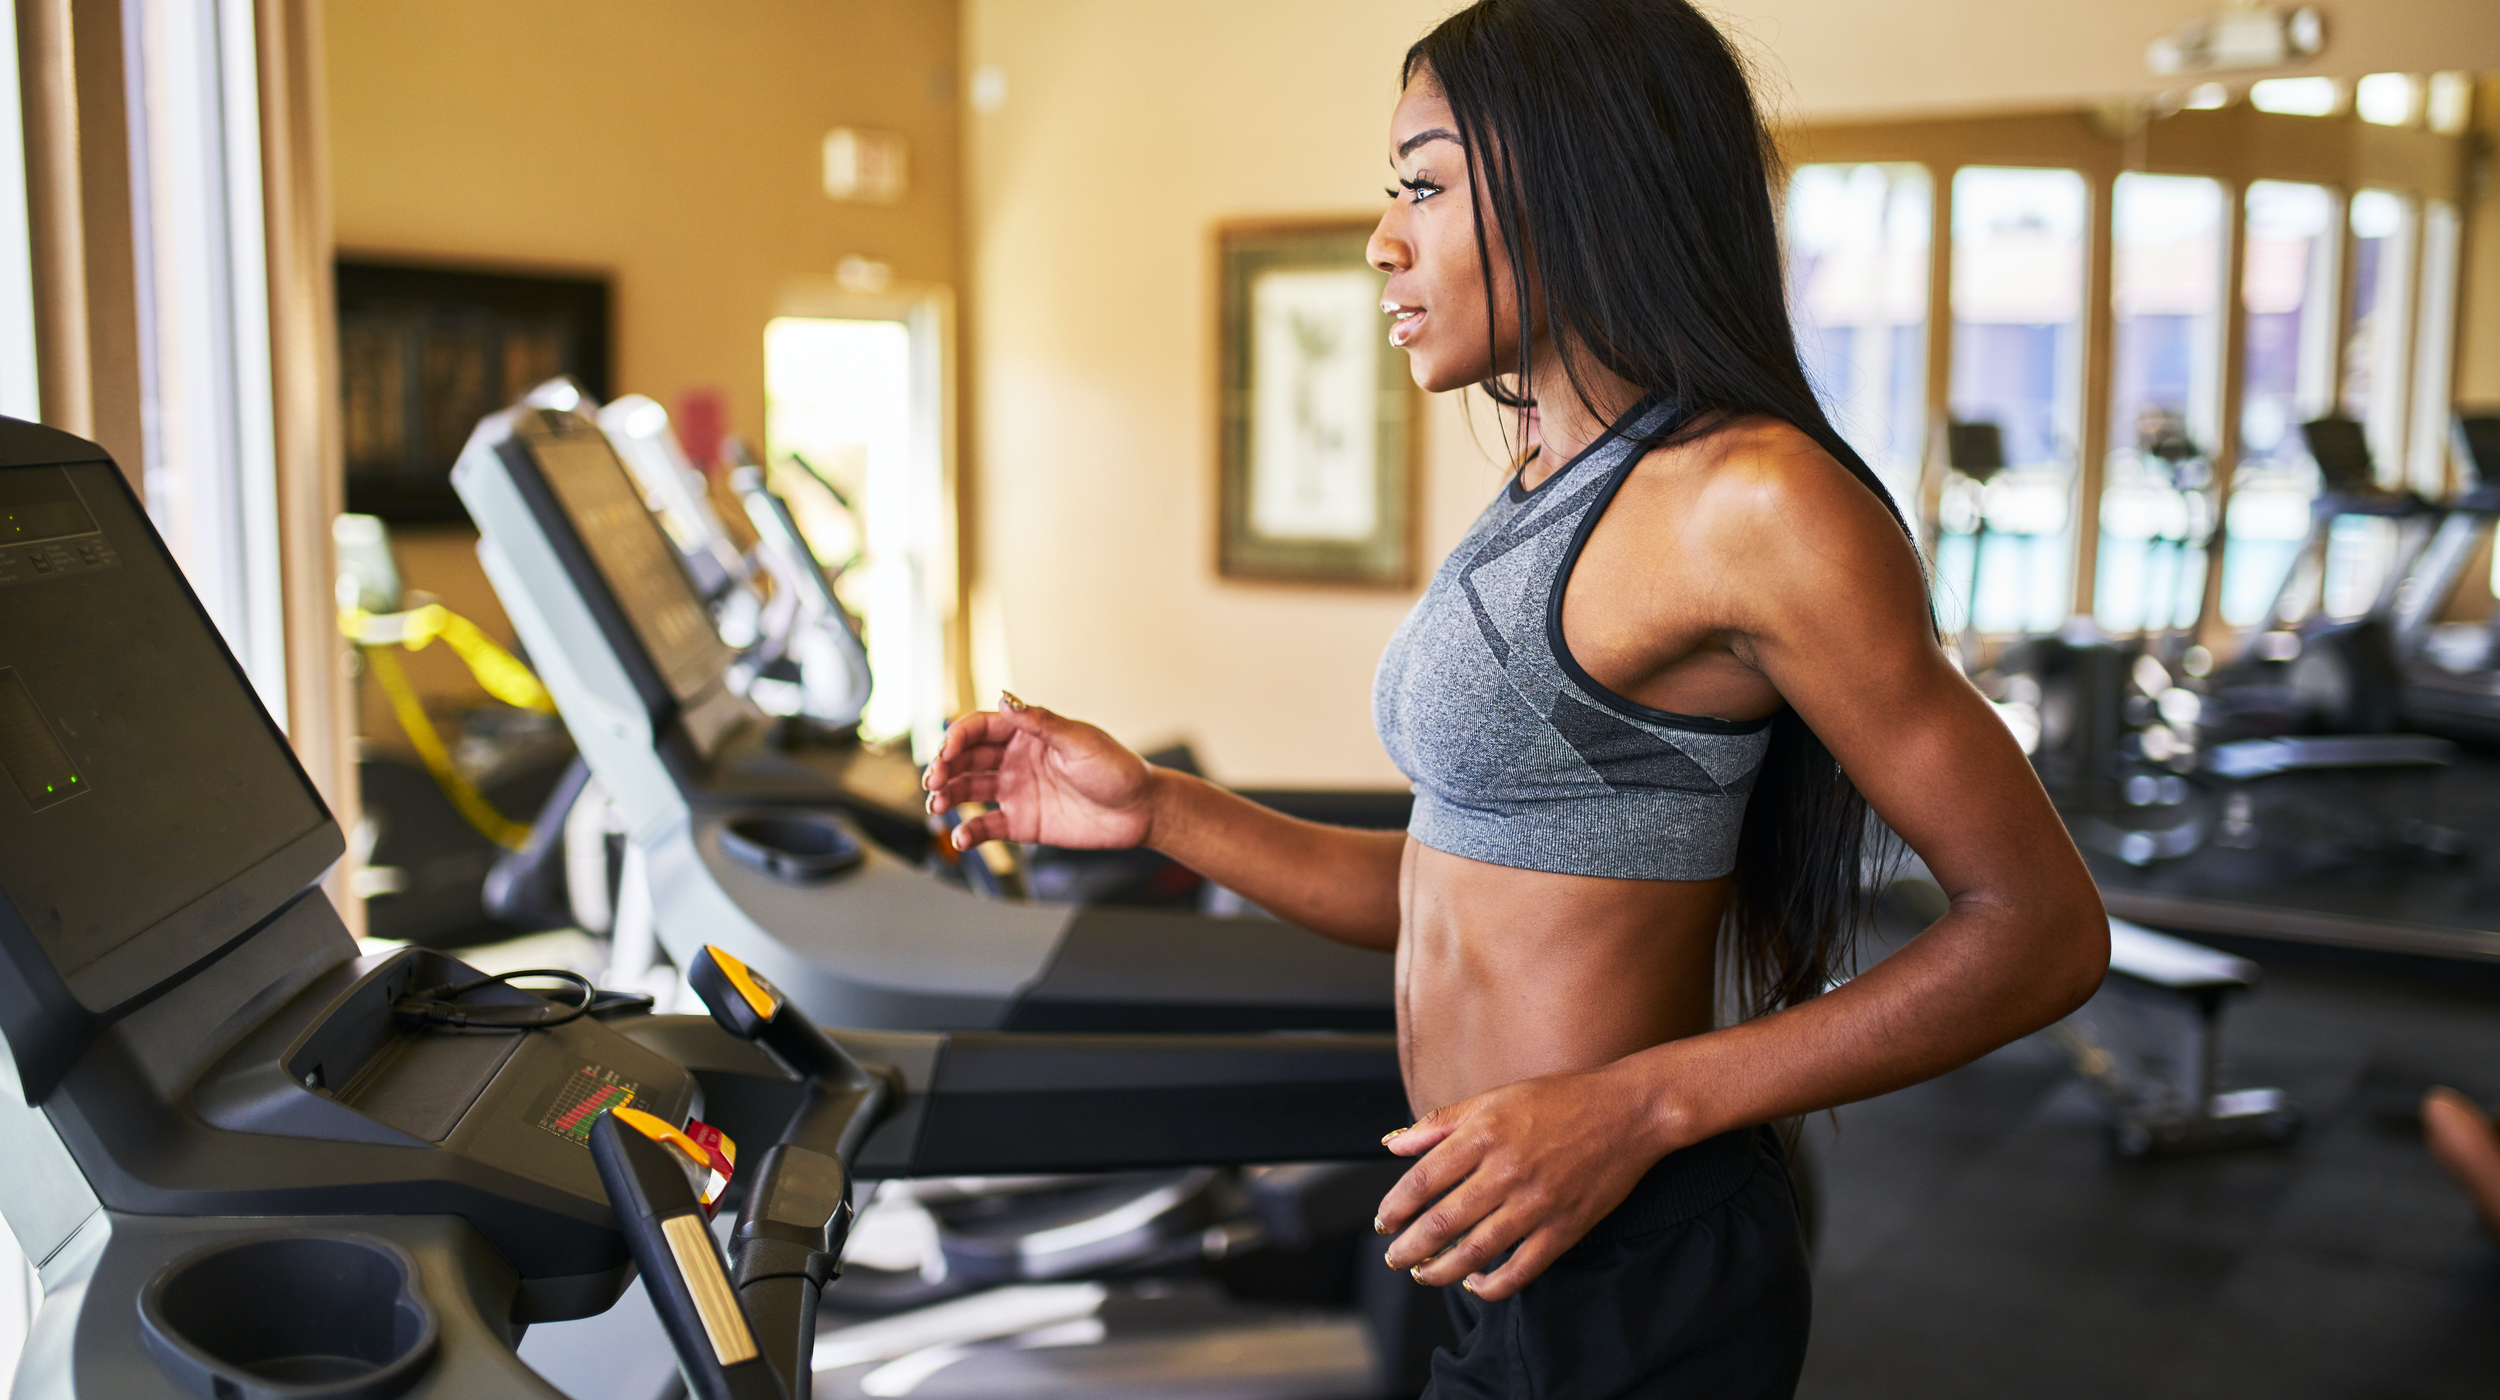 HIIT vs. LISS Cardio – Which is Better For Fat Loss?